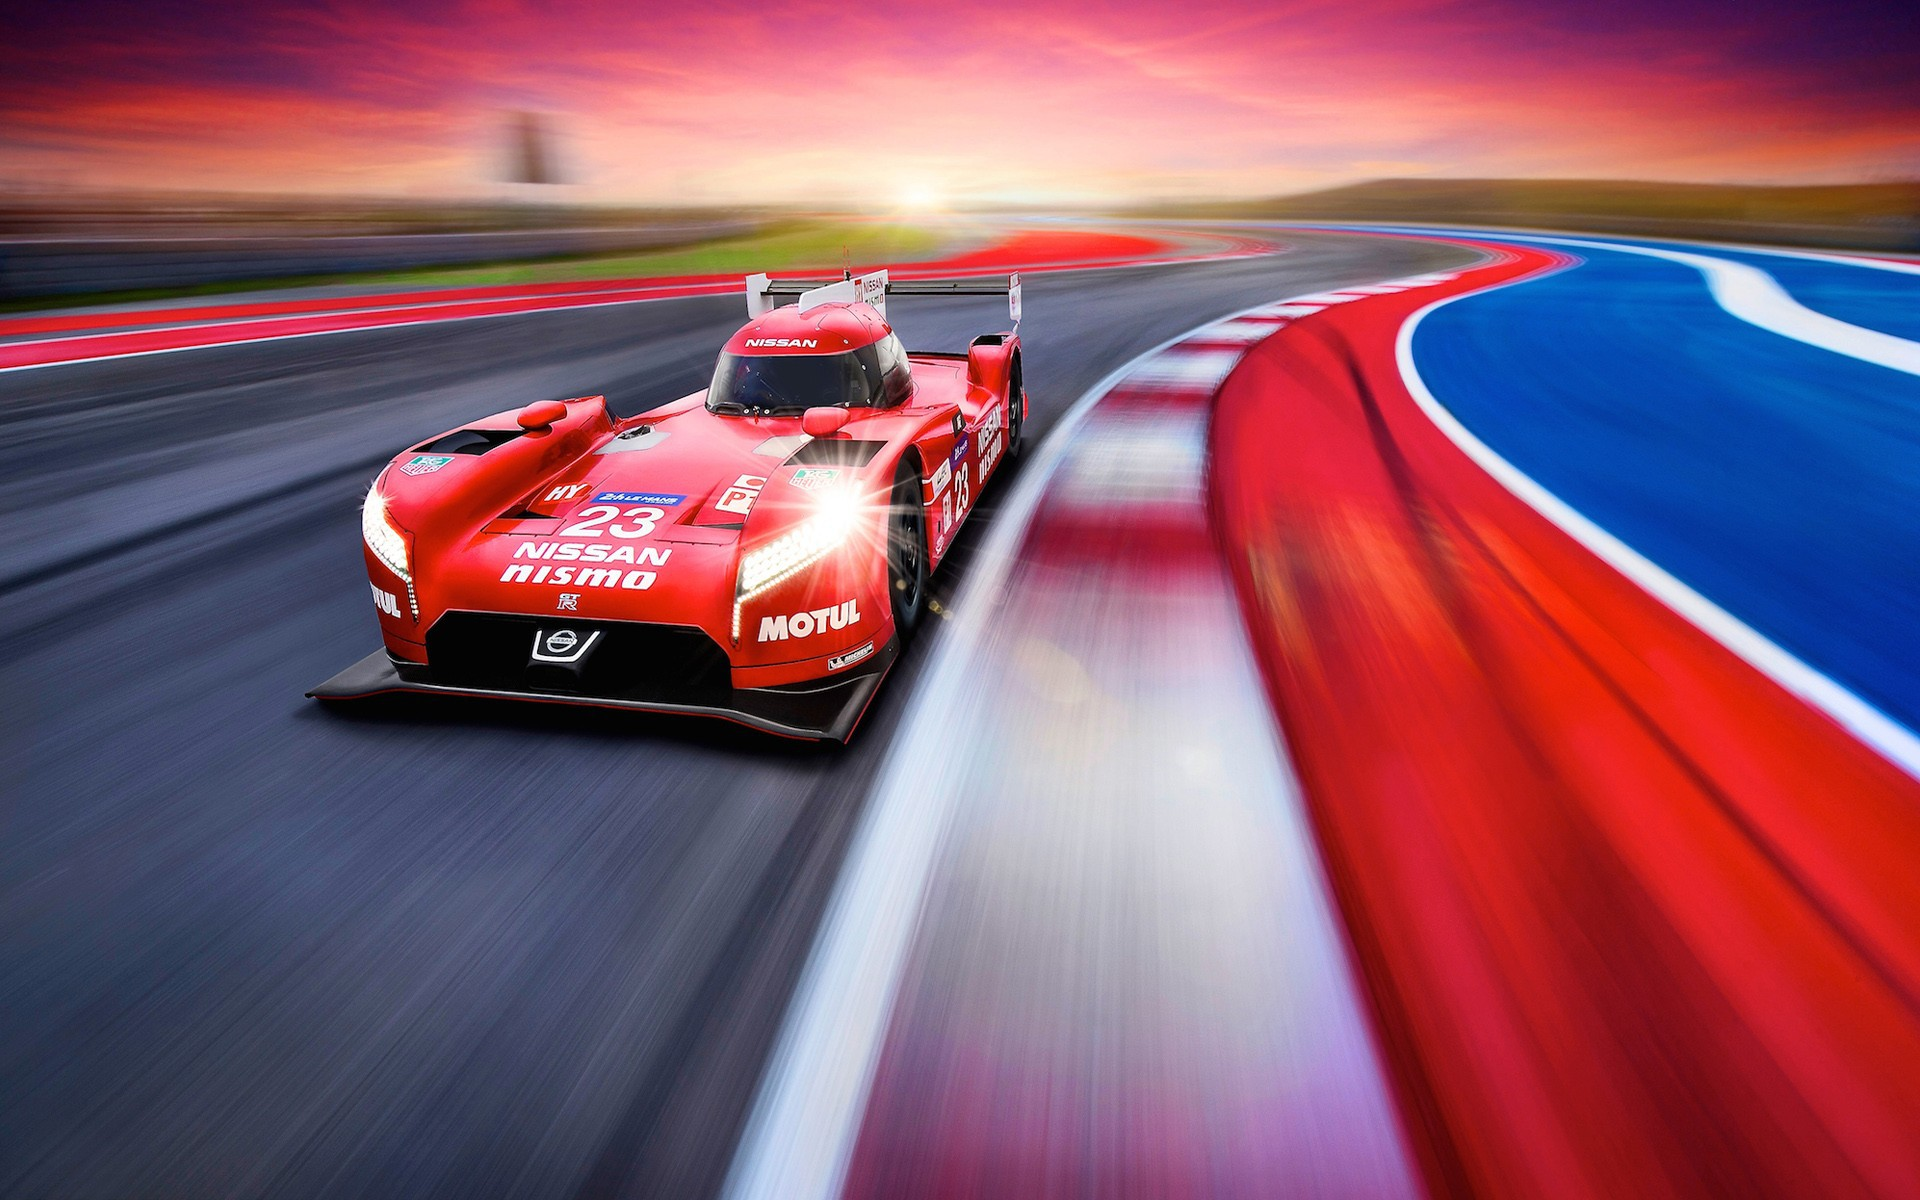 awesome racing track wallpaper 46562